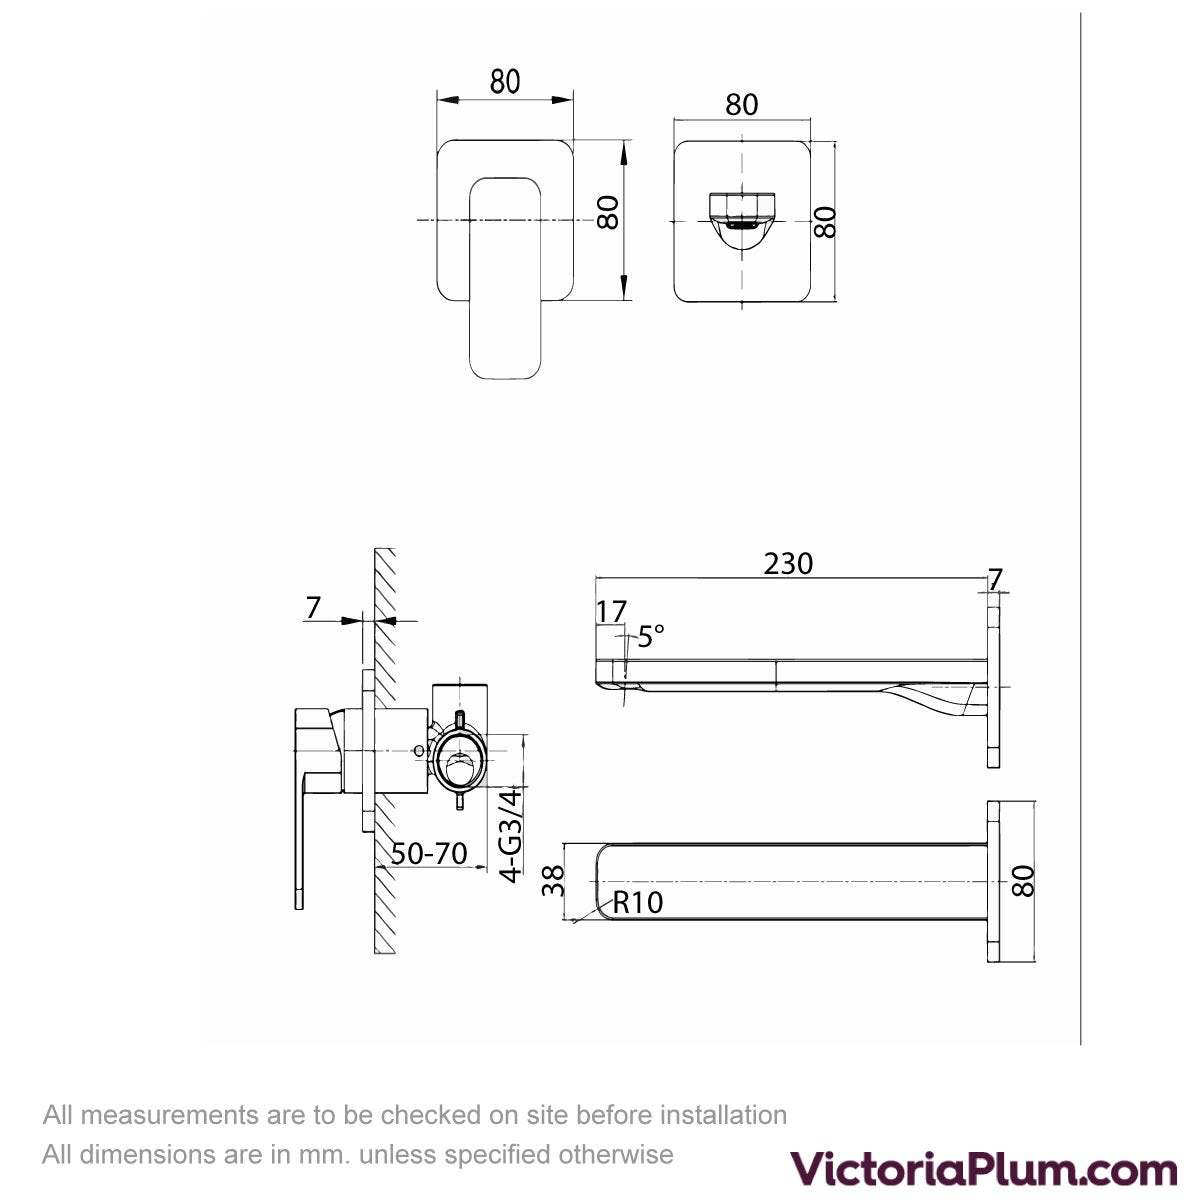 Dimensions for Mode Spencer square wall mounted bath mixer tap